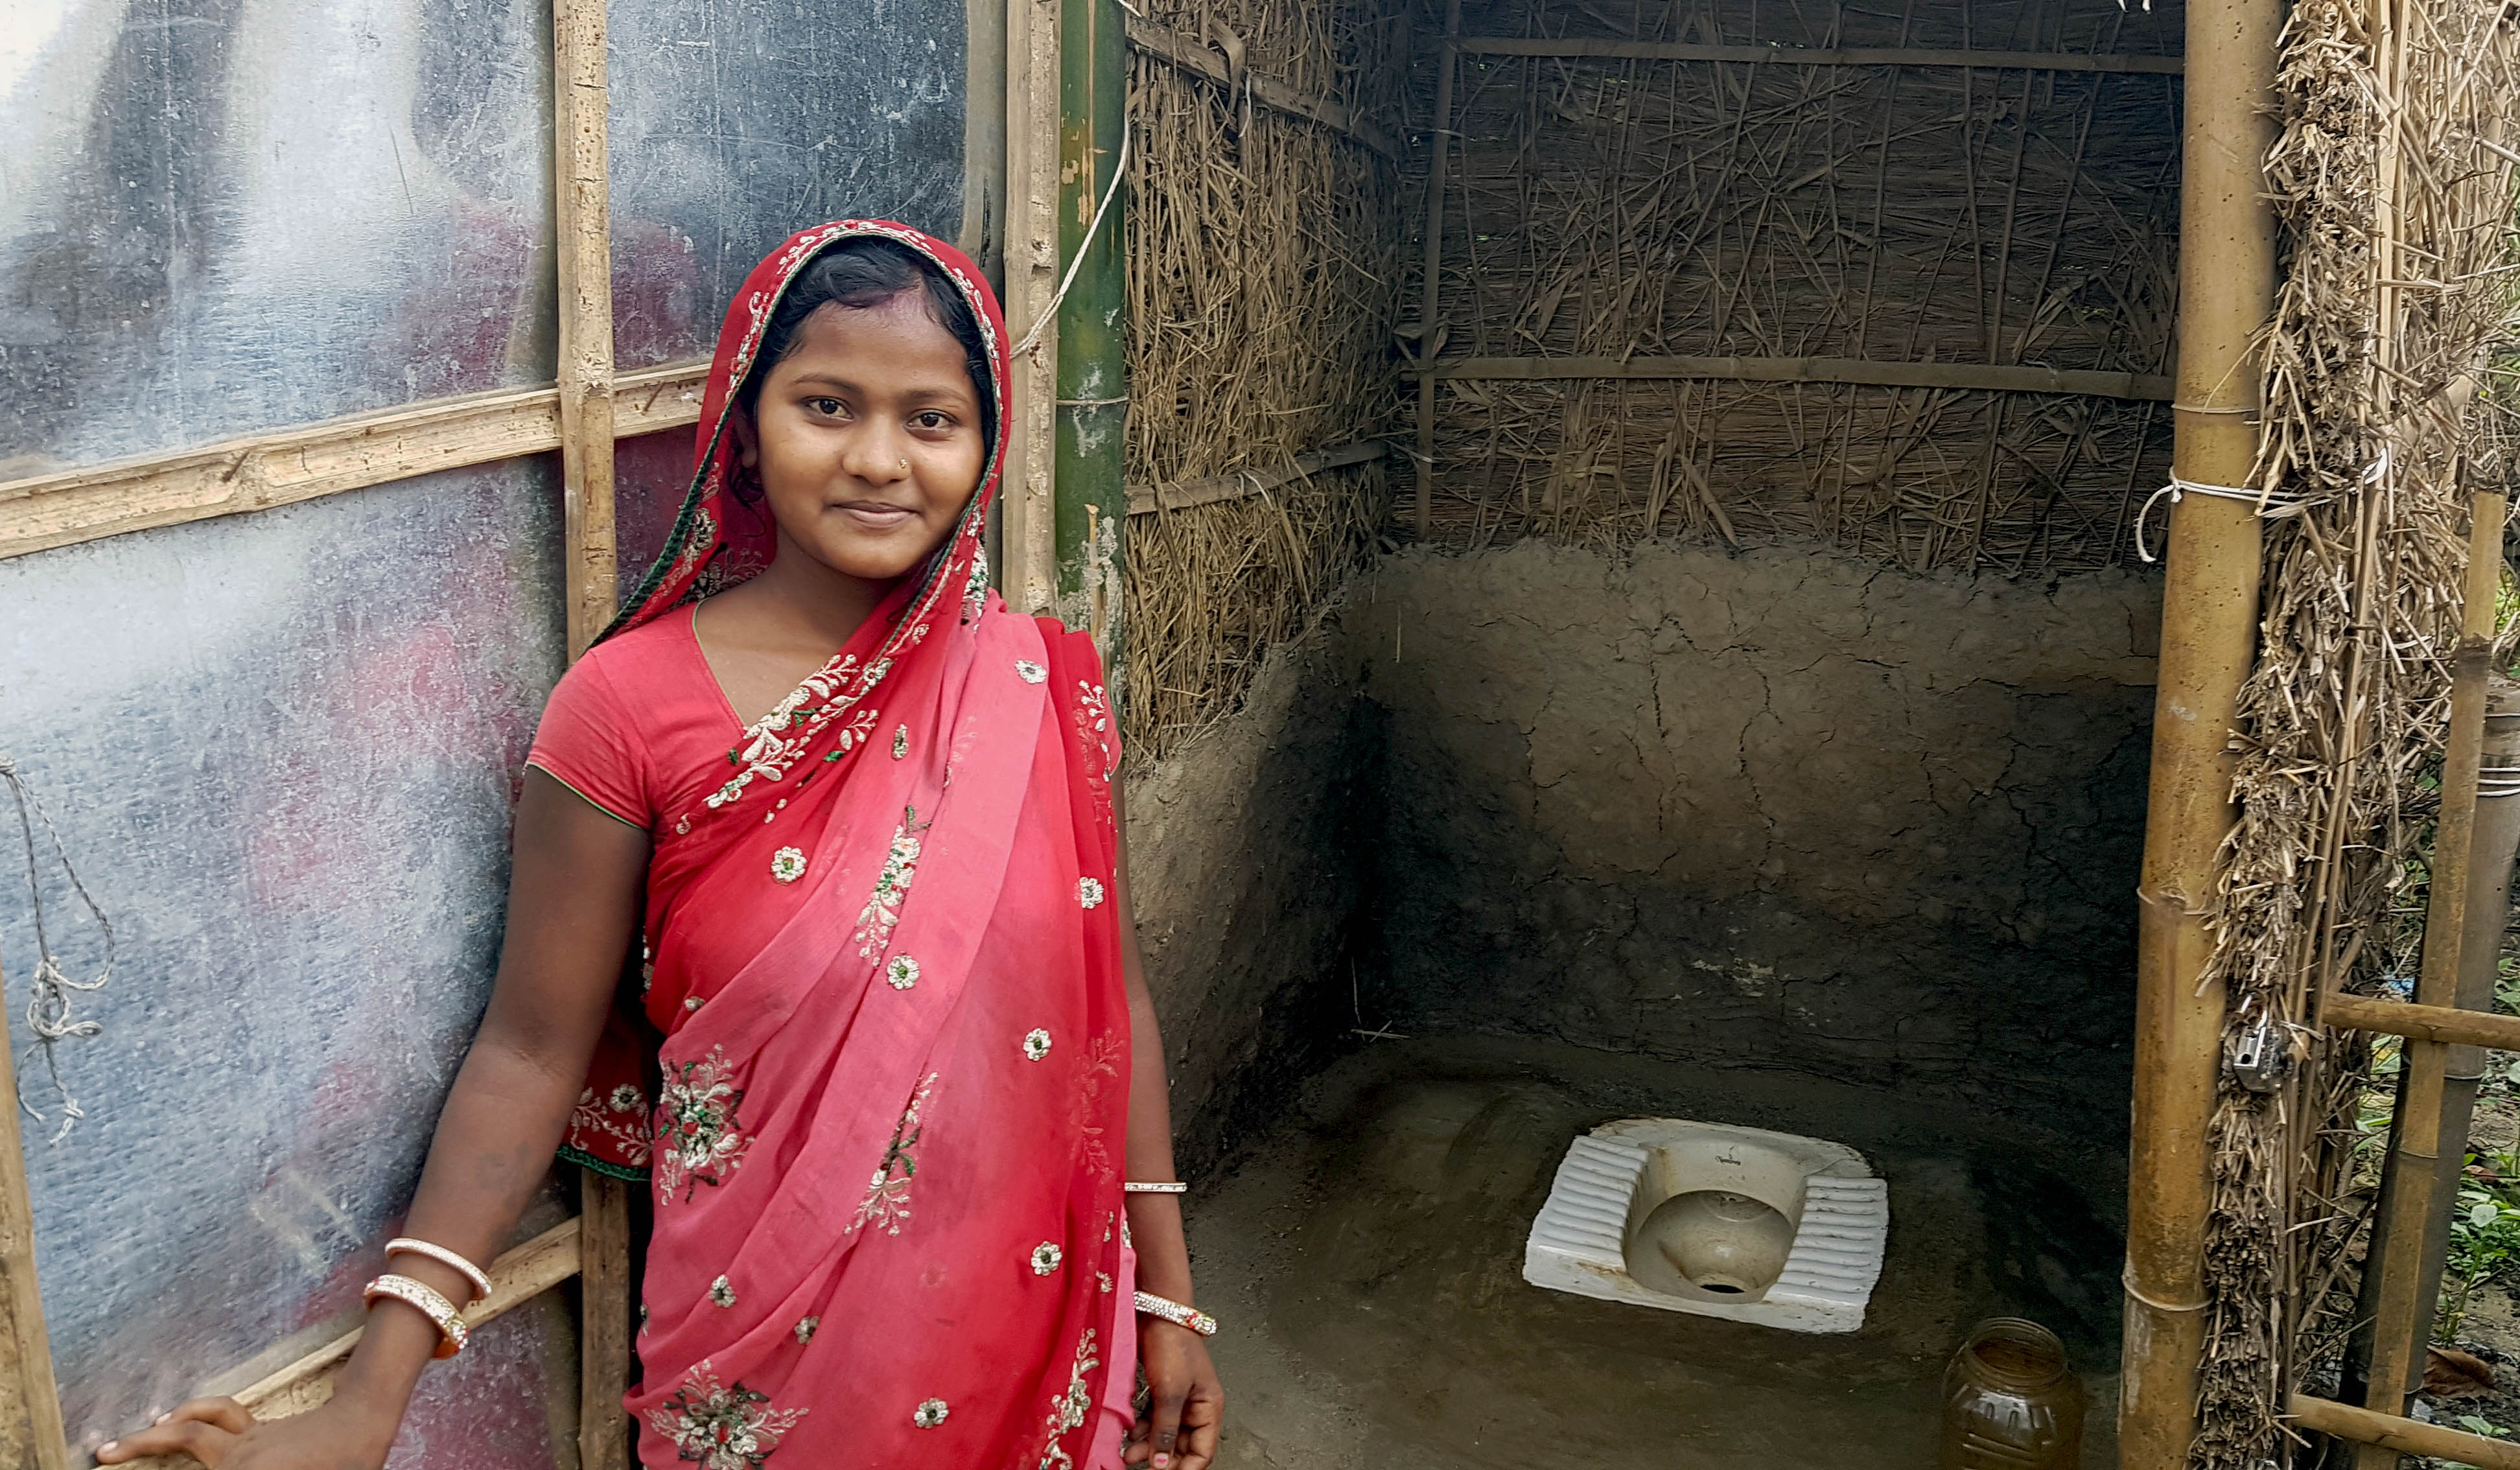 A young girl smiles as she stands in front of a toilets in Belbari.